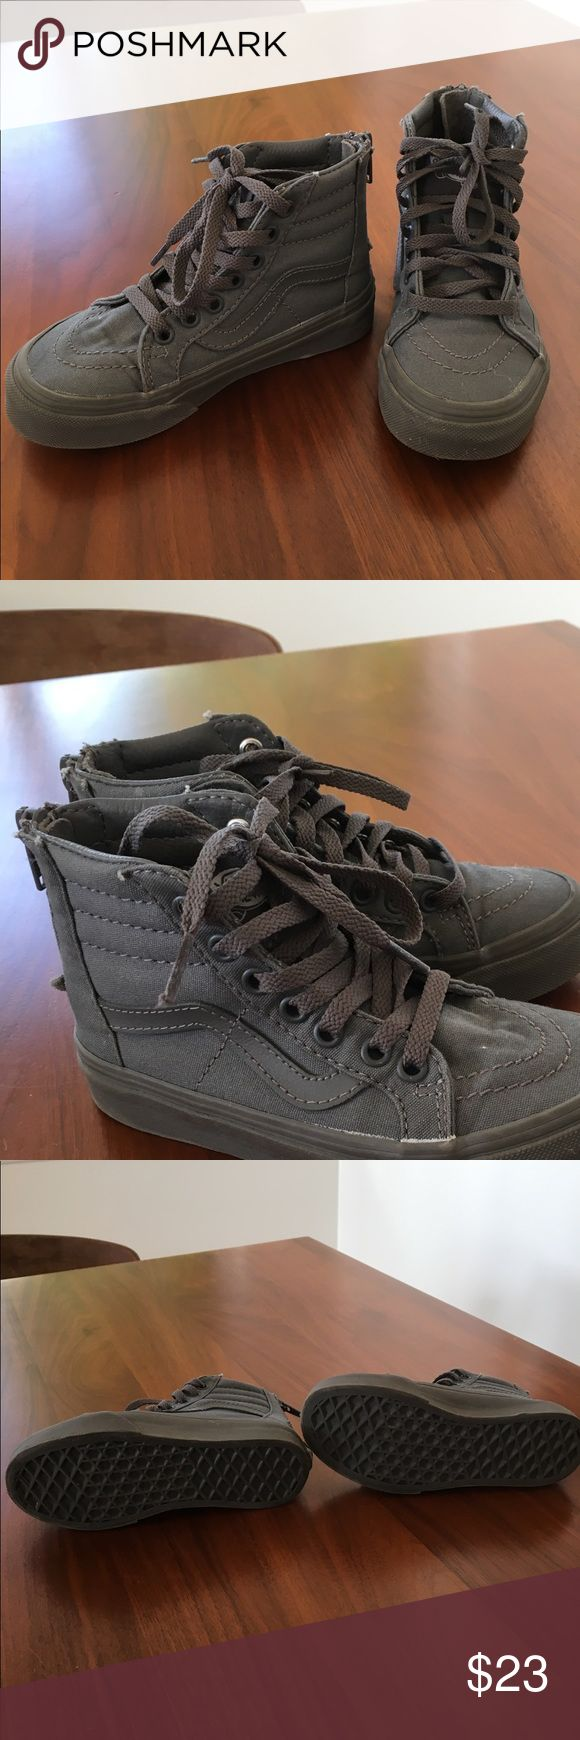 Vans little kid boy or girl. Size 11.5 Sk8 HI-zip These are in excellent condition. Only worn a few times before my son outgrew them. Nice neutral gray color for boys or girls. Zip up in the back. Size 11.5 Vans Shoes Sneakers